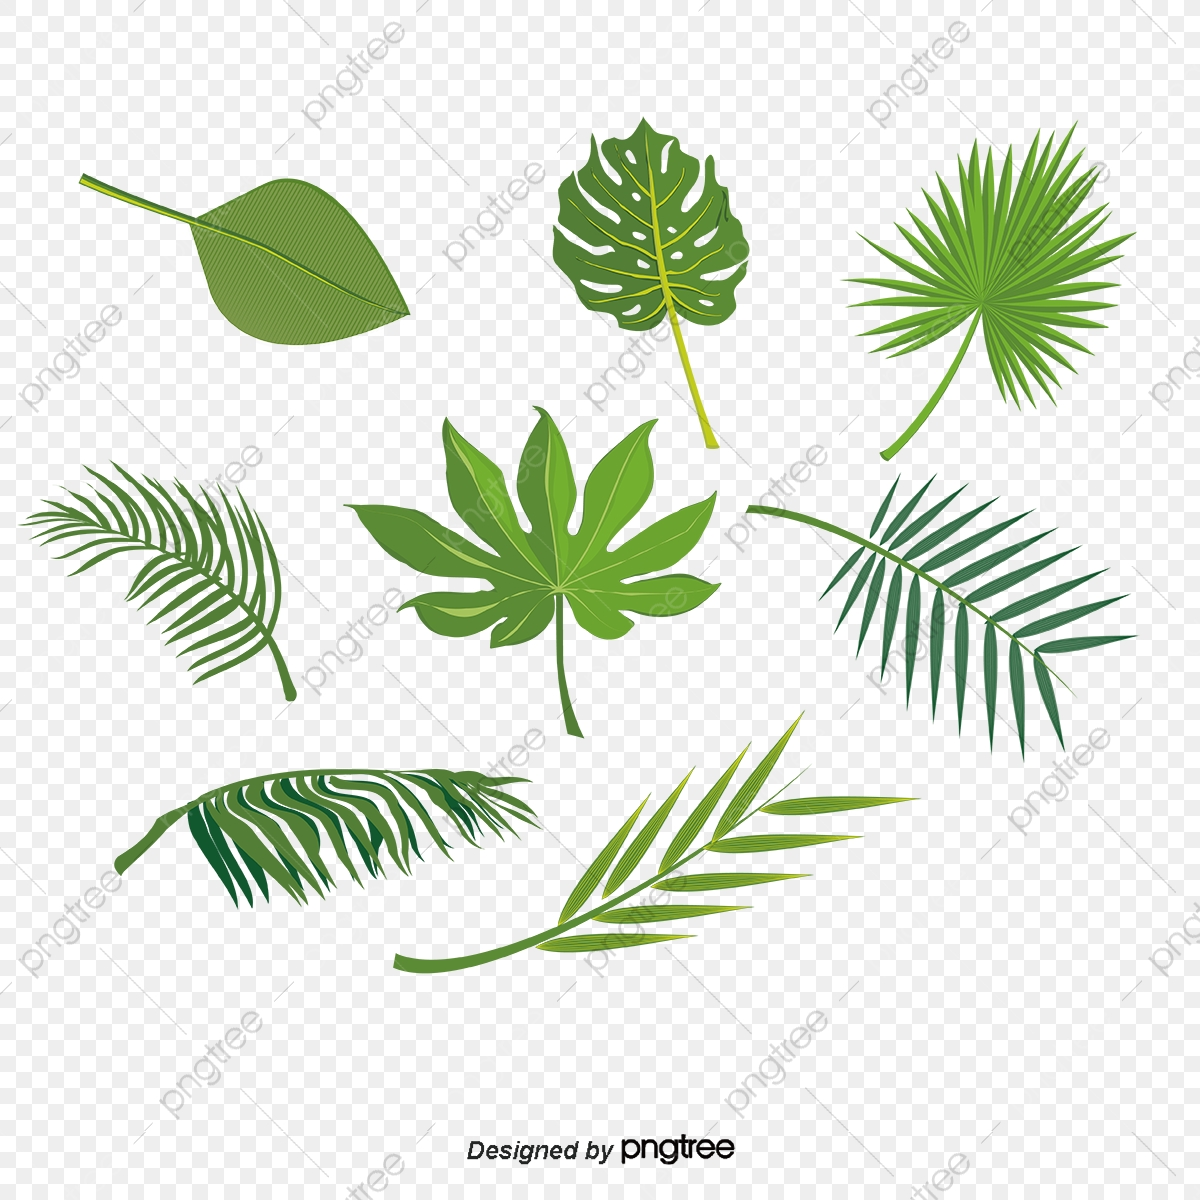 Leaf Vector 49000 Leaf Graphic Resources For Free Download